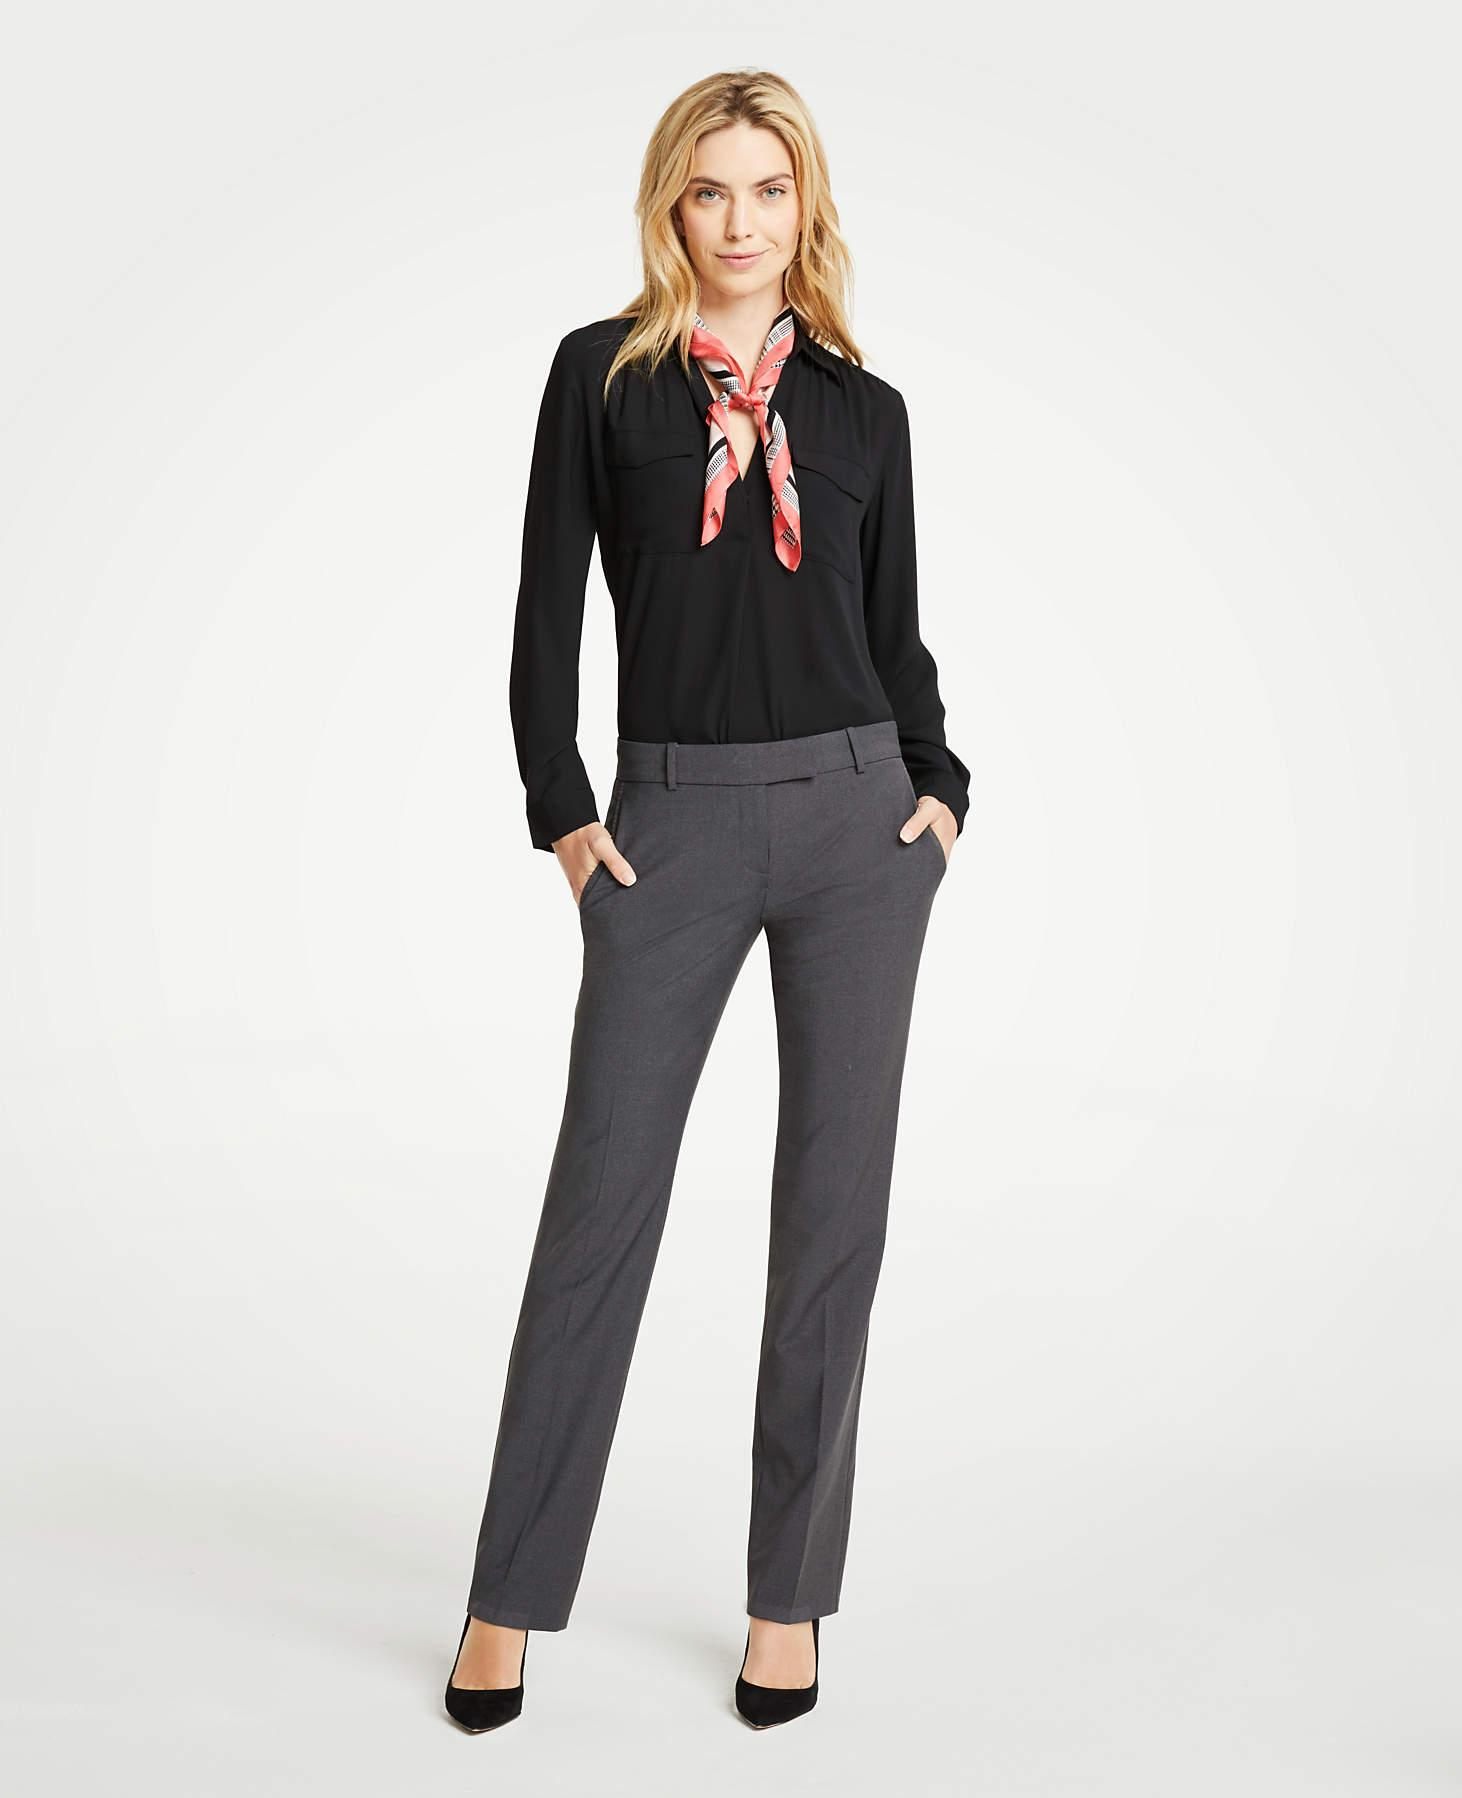 Ann Taylor The Straight Pant In Tropical Wool in Grey